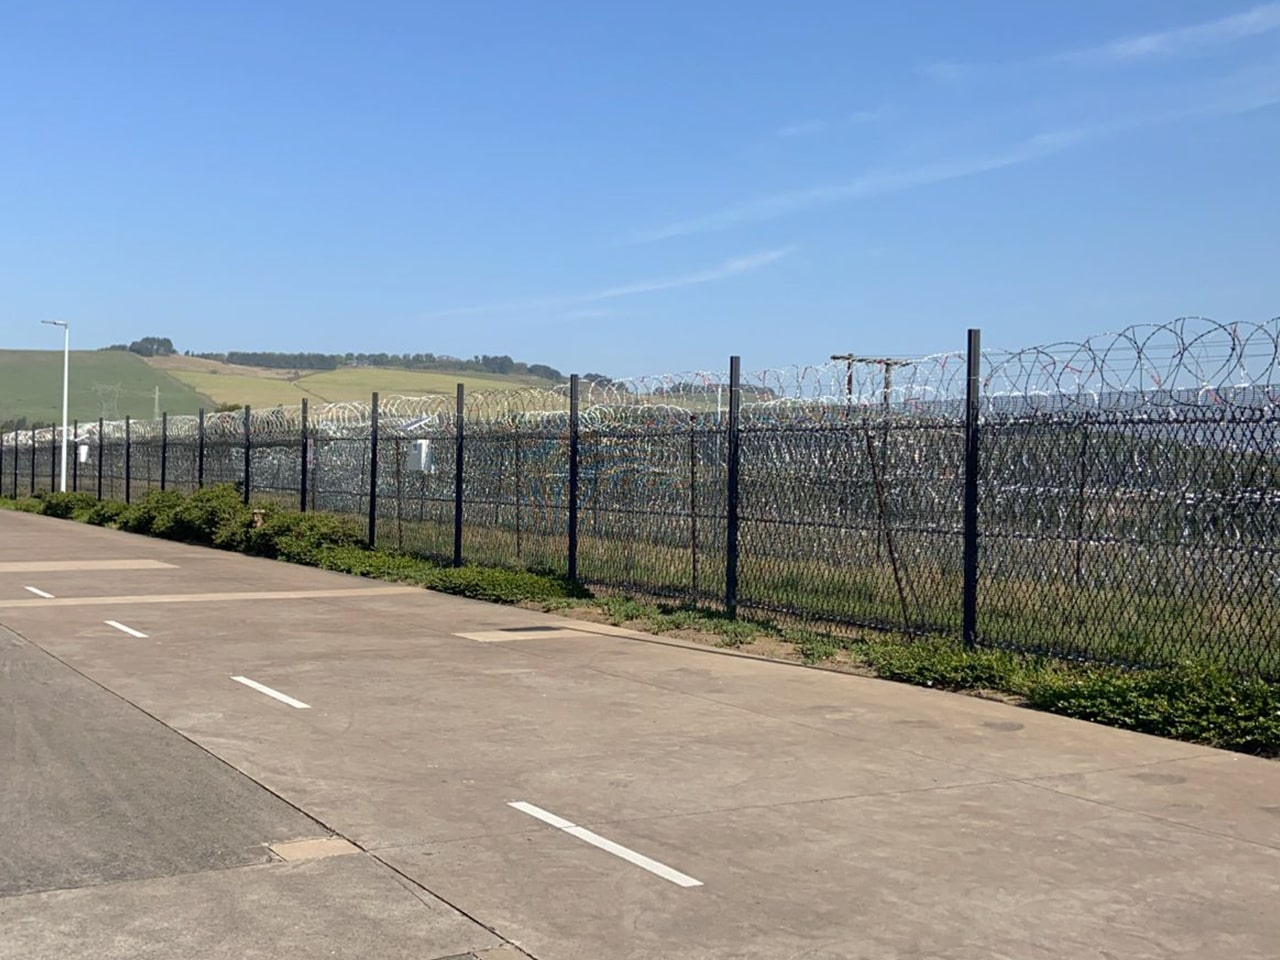 Two layers of perimeter protection razor wire mesh inner and concertina coils outer